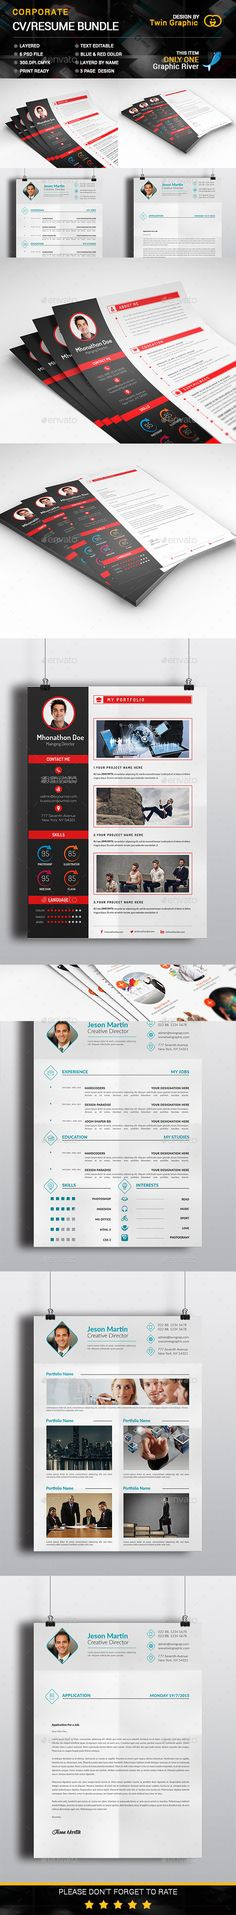 3 Page Business Resume with 3 Color Combinations Business resume - resume business